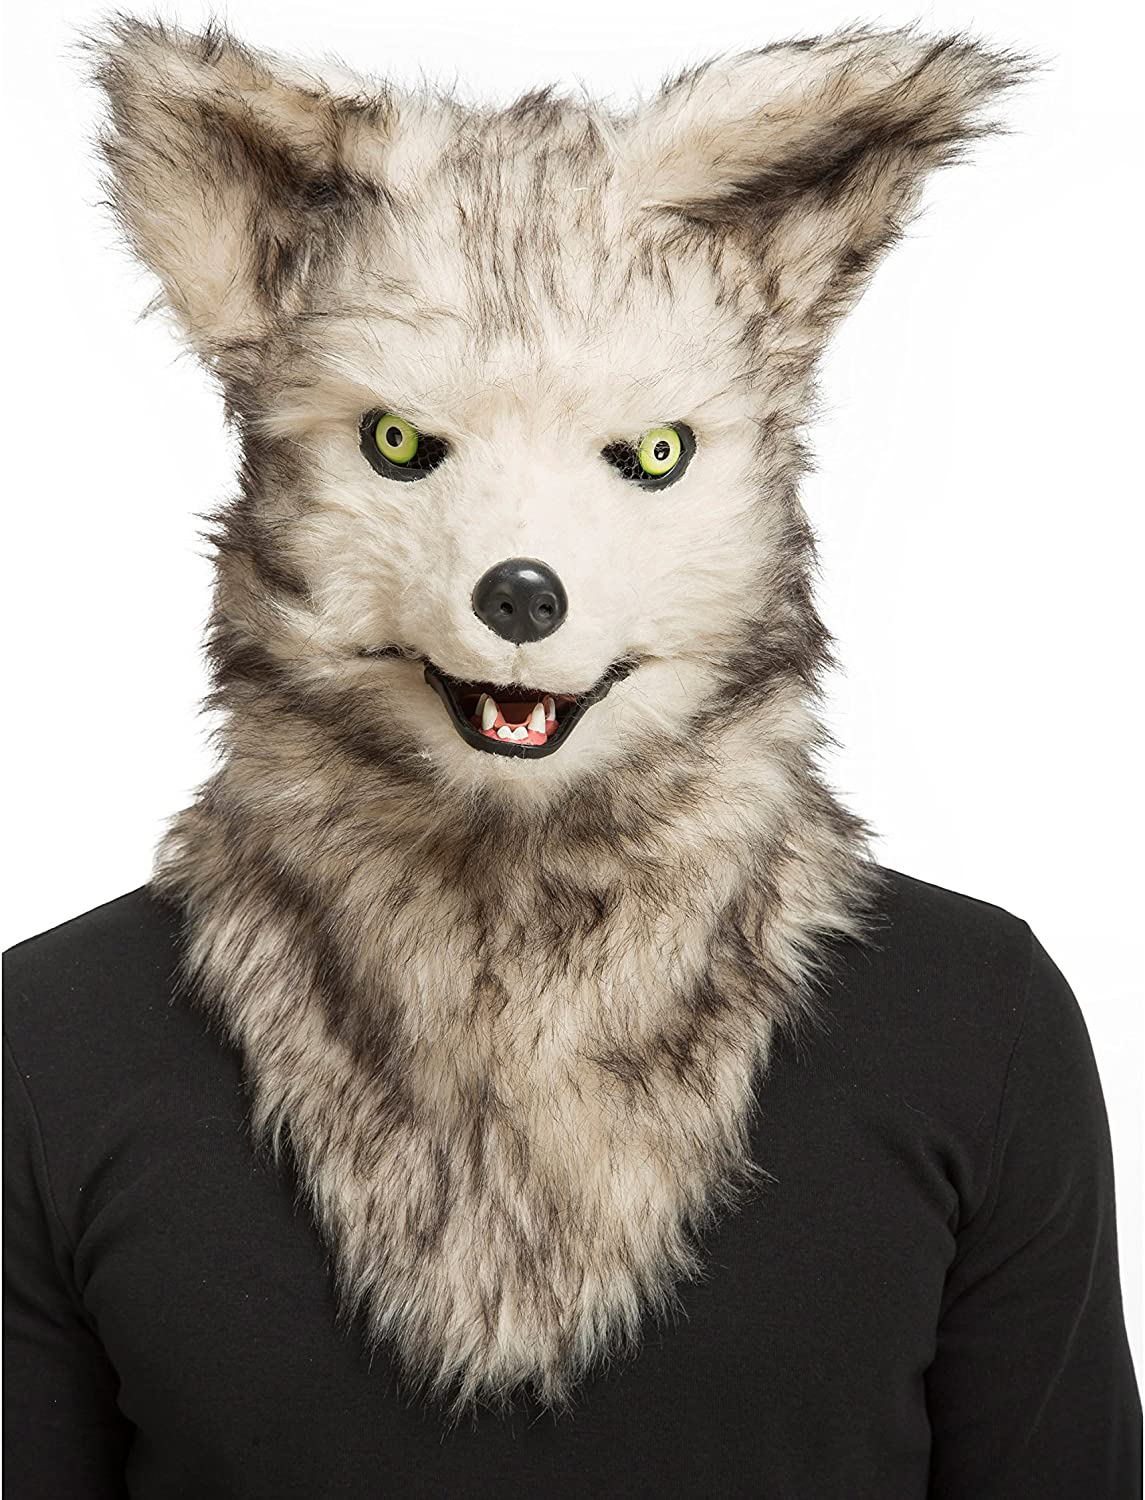 Viving Costumes 204678 Wolf Mask with Movable Jaw, Multi color, One Size